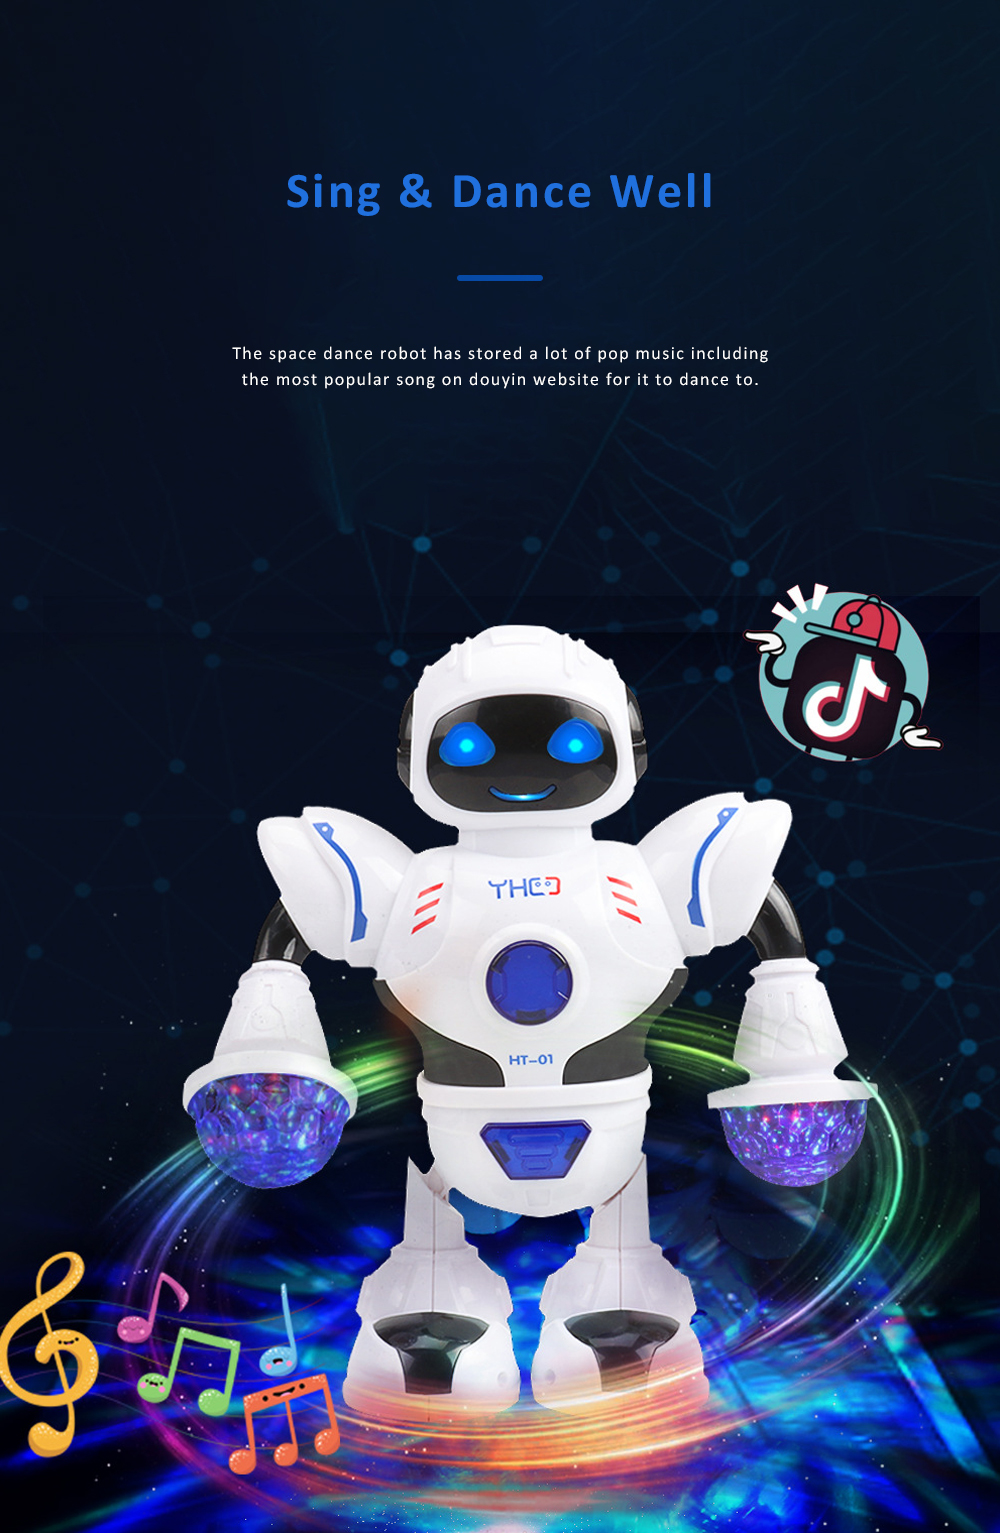 Space Dance Robot for Kids' Gift With LED Light Dancing Robot Kids' Electronic Toy Battery-operated Dance Robot 2